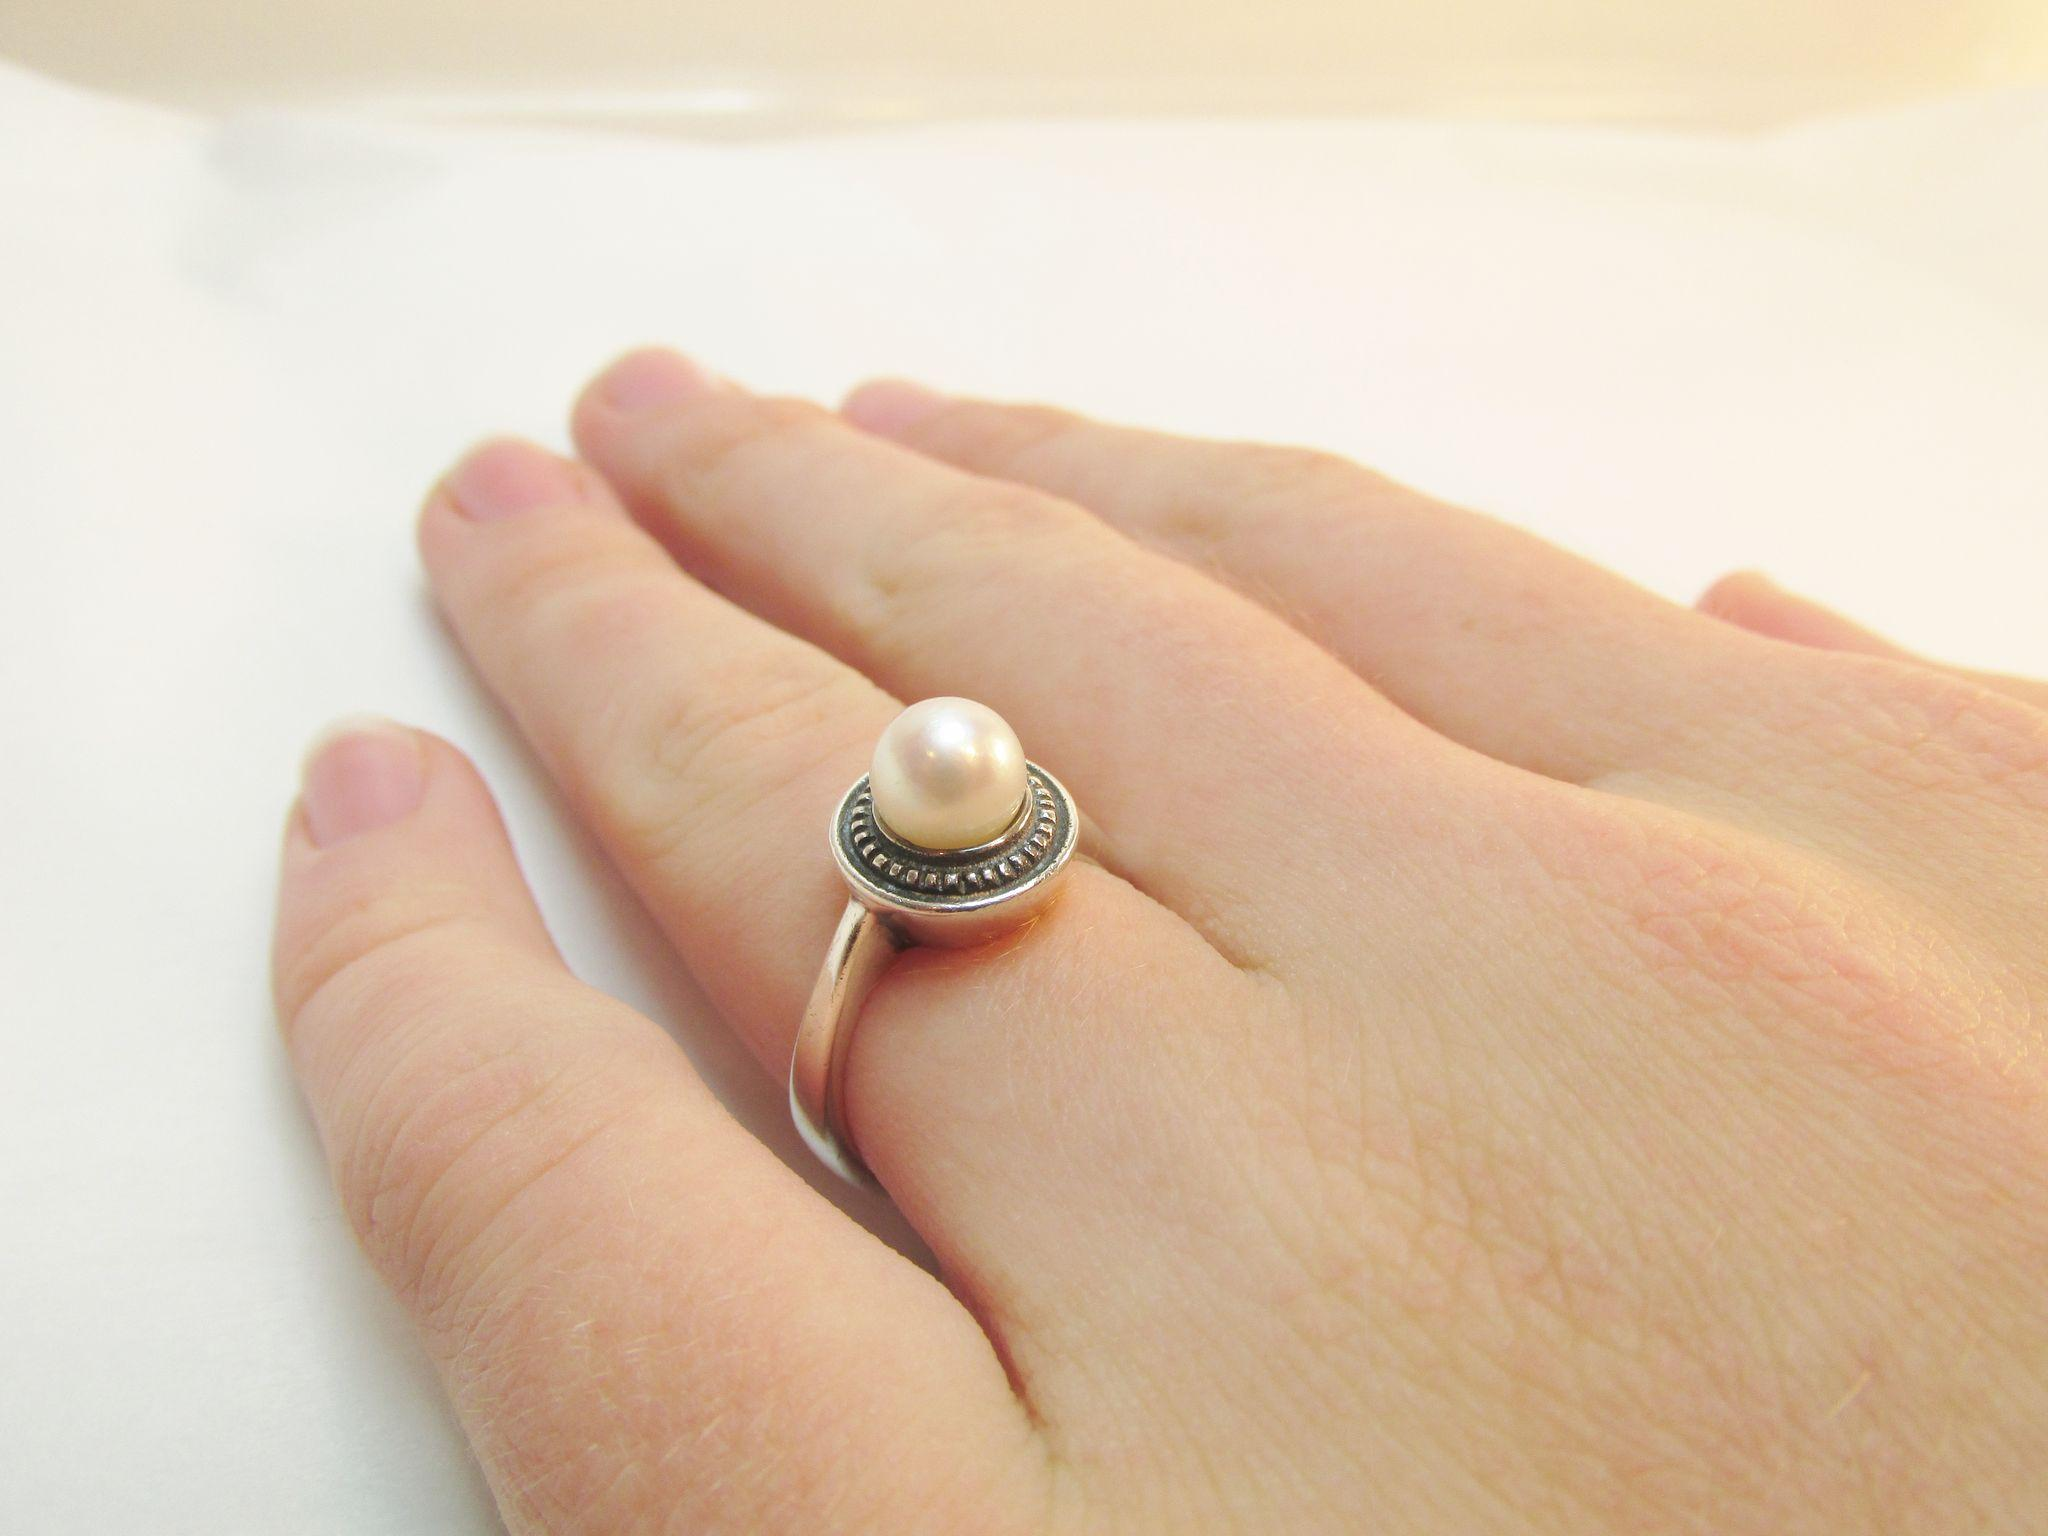 James Avery Pearl Sterling Ring Estate james avery wedding bands Roll over Large image to magnify click Large image to zoom